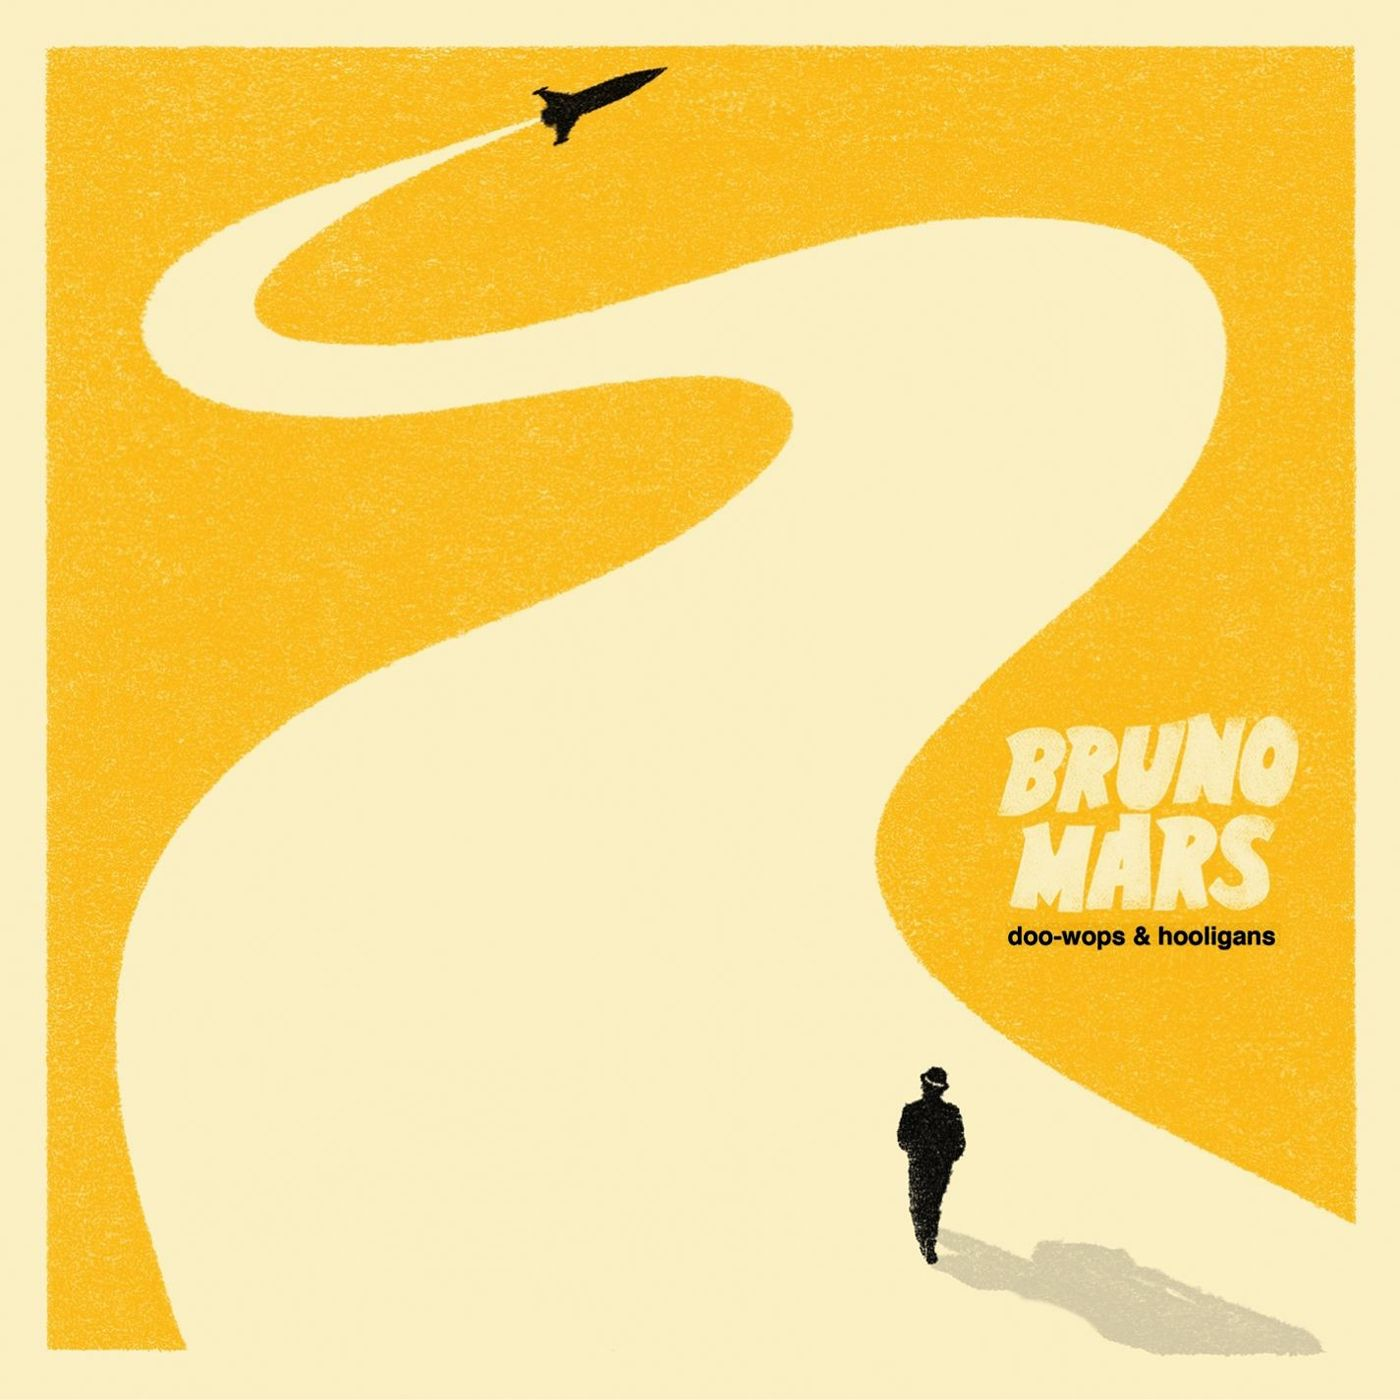 Bruno Mars - Doo-wops & Hooligans album cover